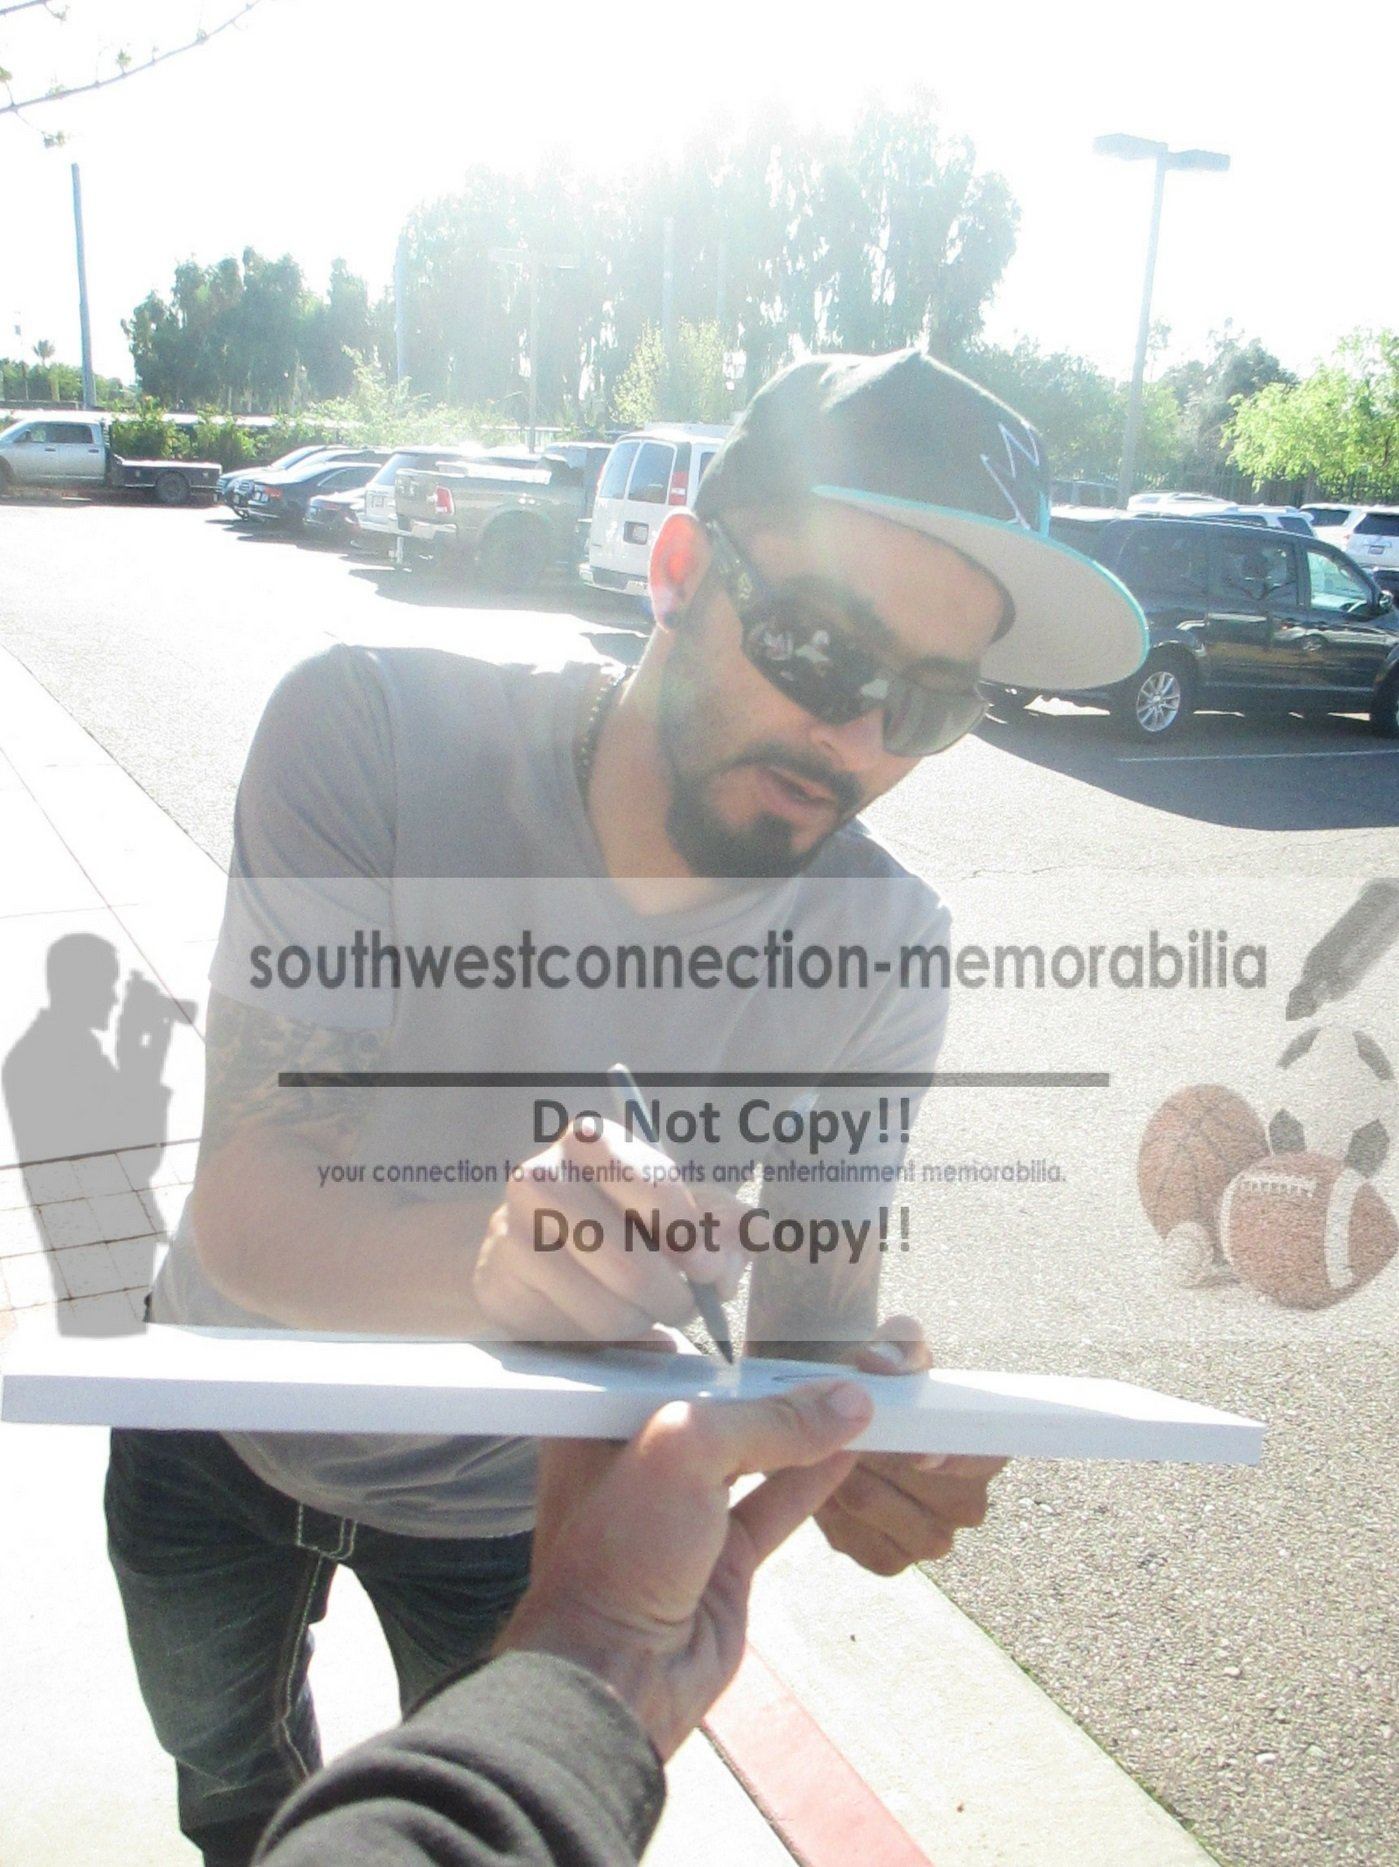 San Francisco Giants Sergio Romo Autographed Hand Signed 2012 World Series Logo Schutt Baseball Pitching Rubber with Proof Photo of Signing and COA SF Giants Collectibles